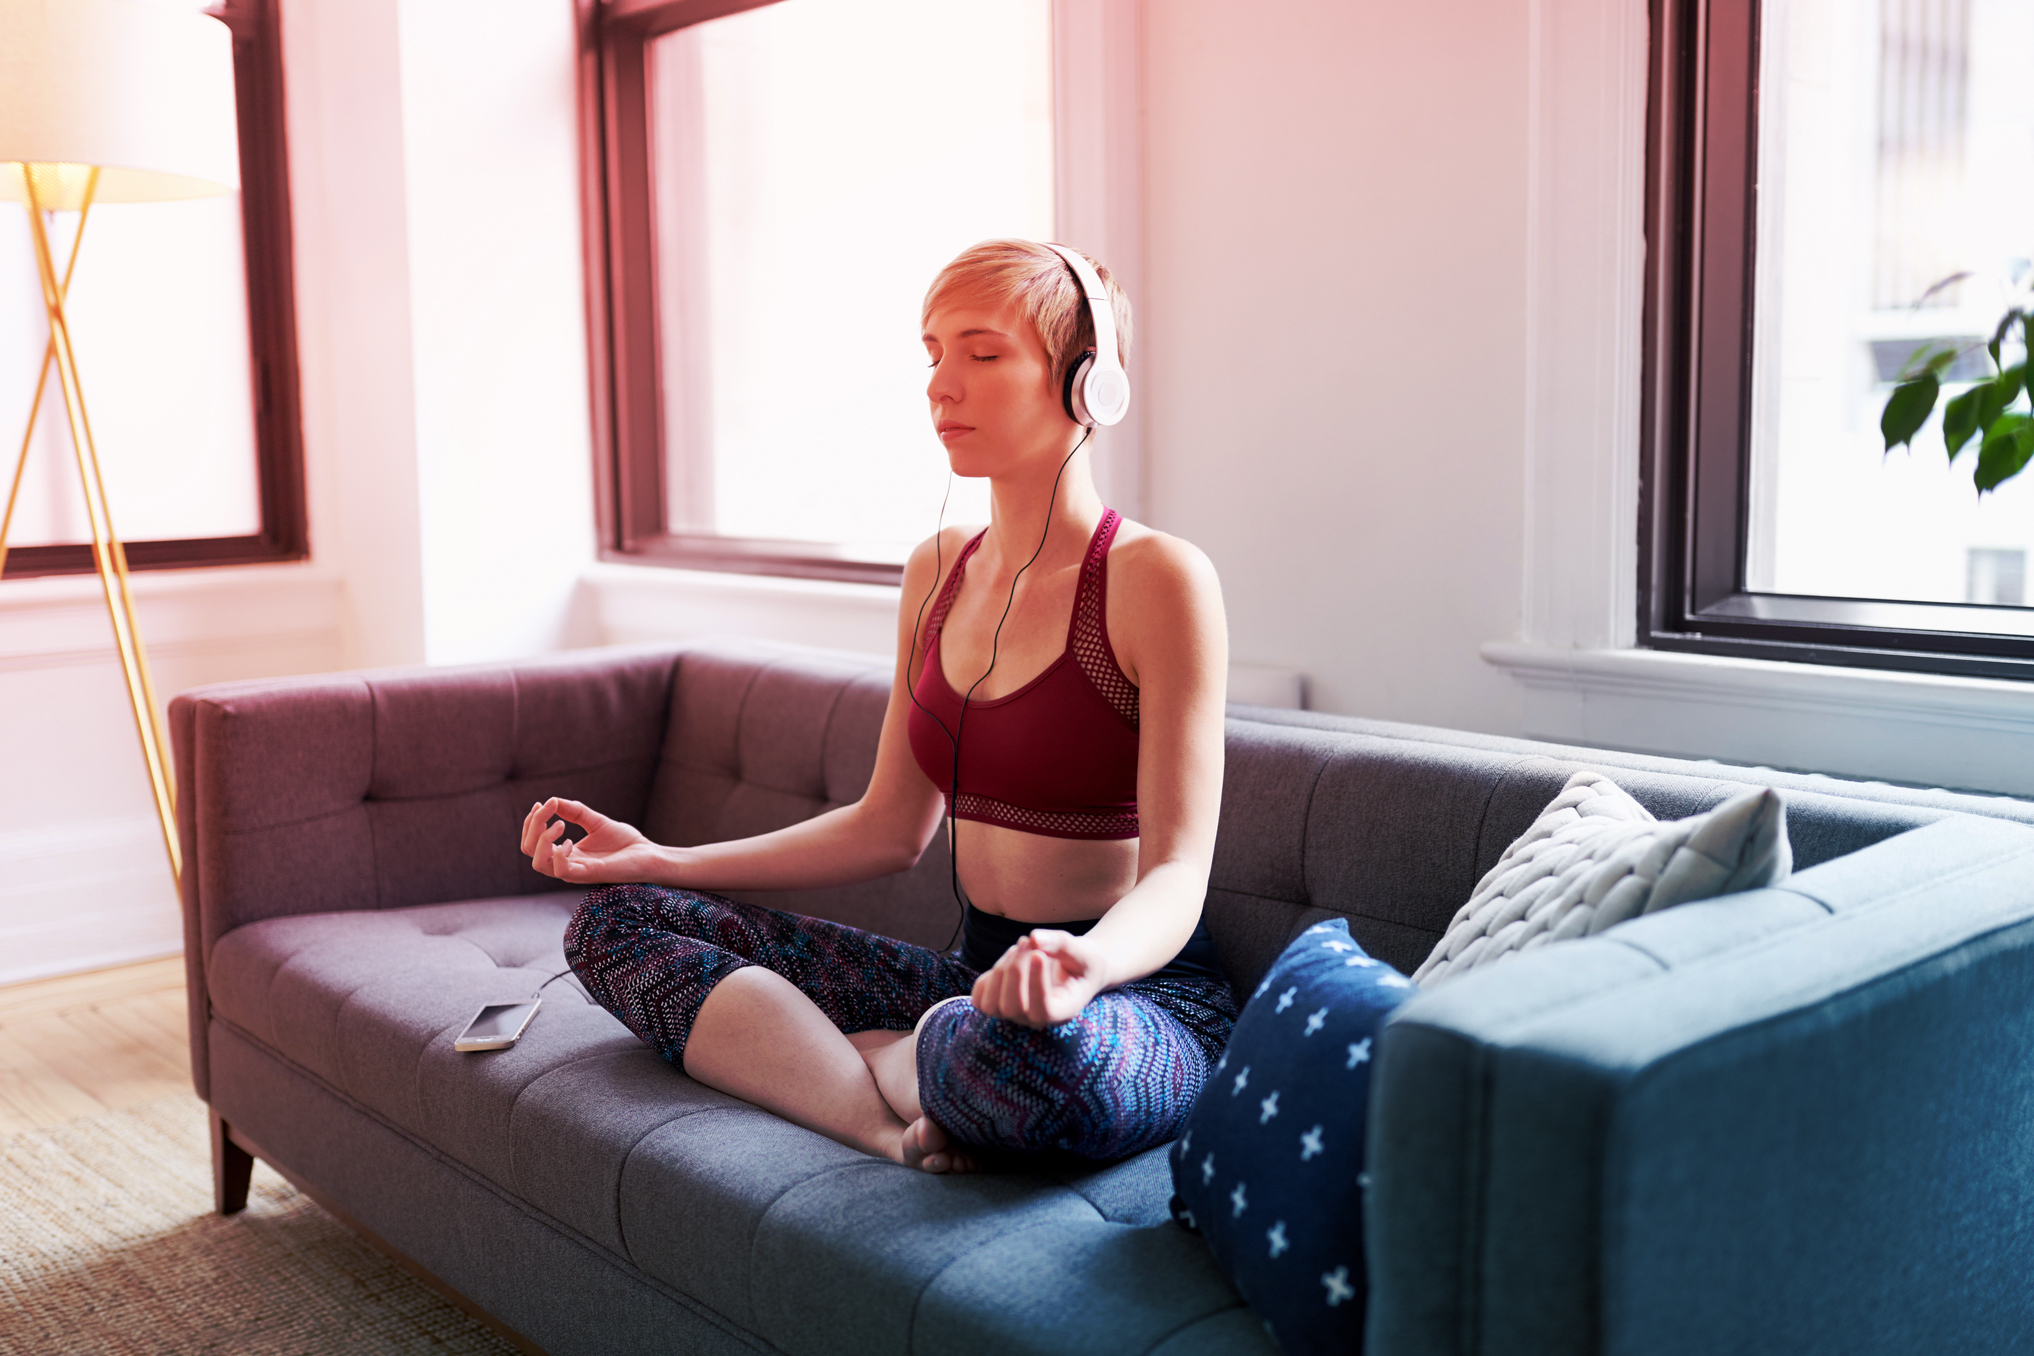 Meditation, wellness brands like Headspace open up their offerings, add more content